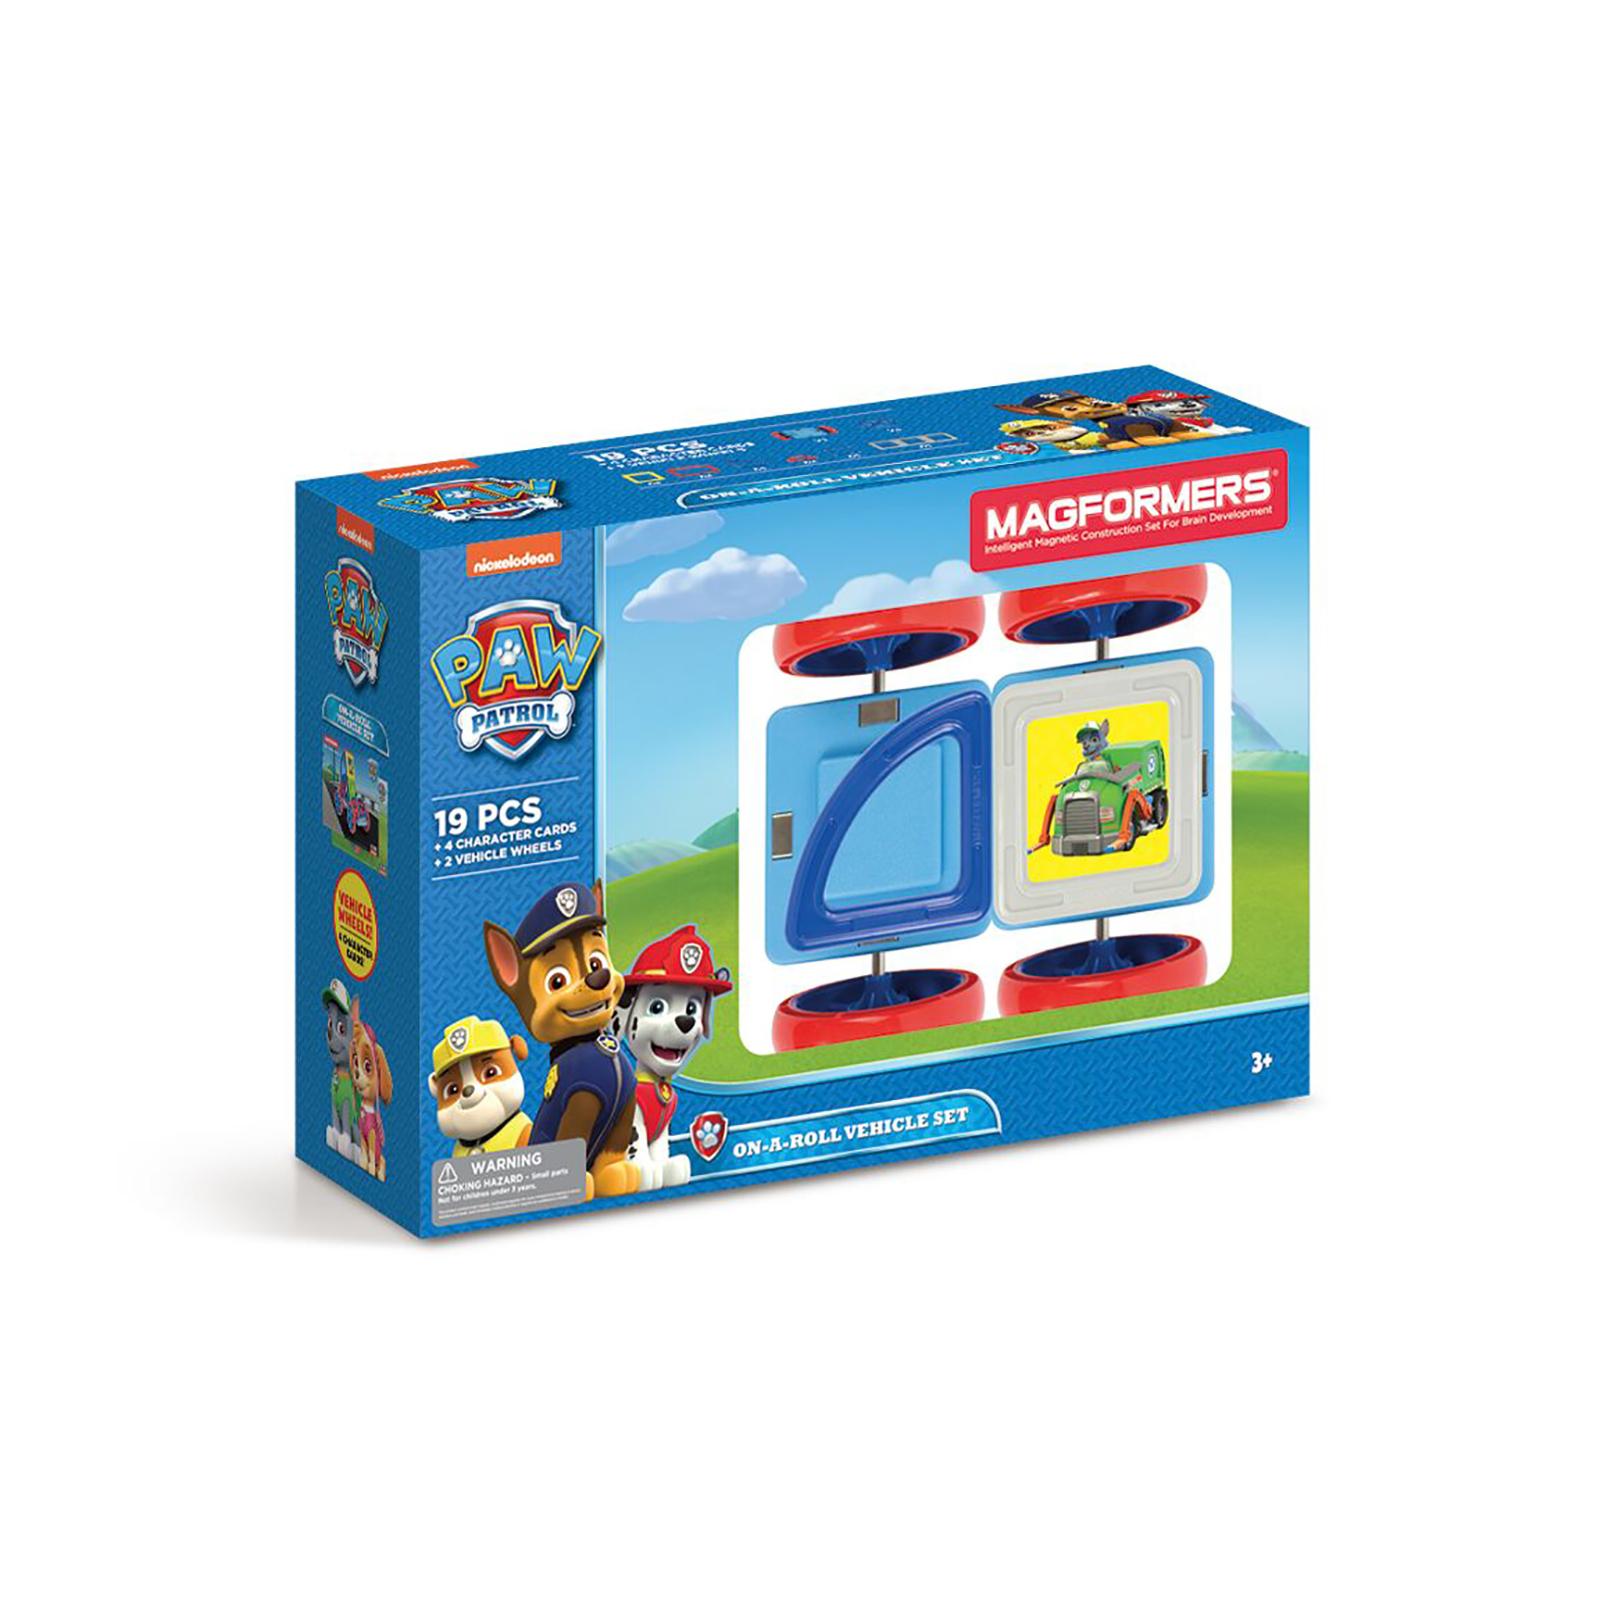 Magformers Paw Patrol 19 Piece On A Roll Vehicle Magnetic Construction Set